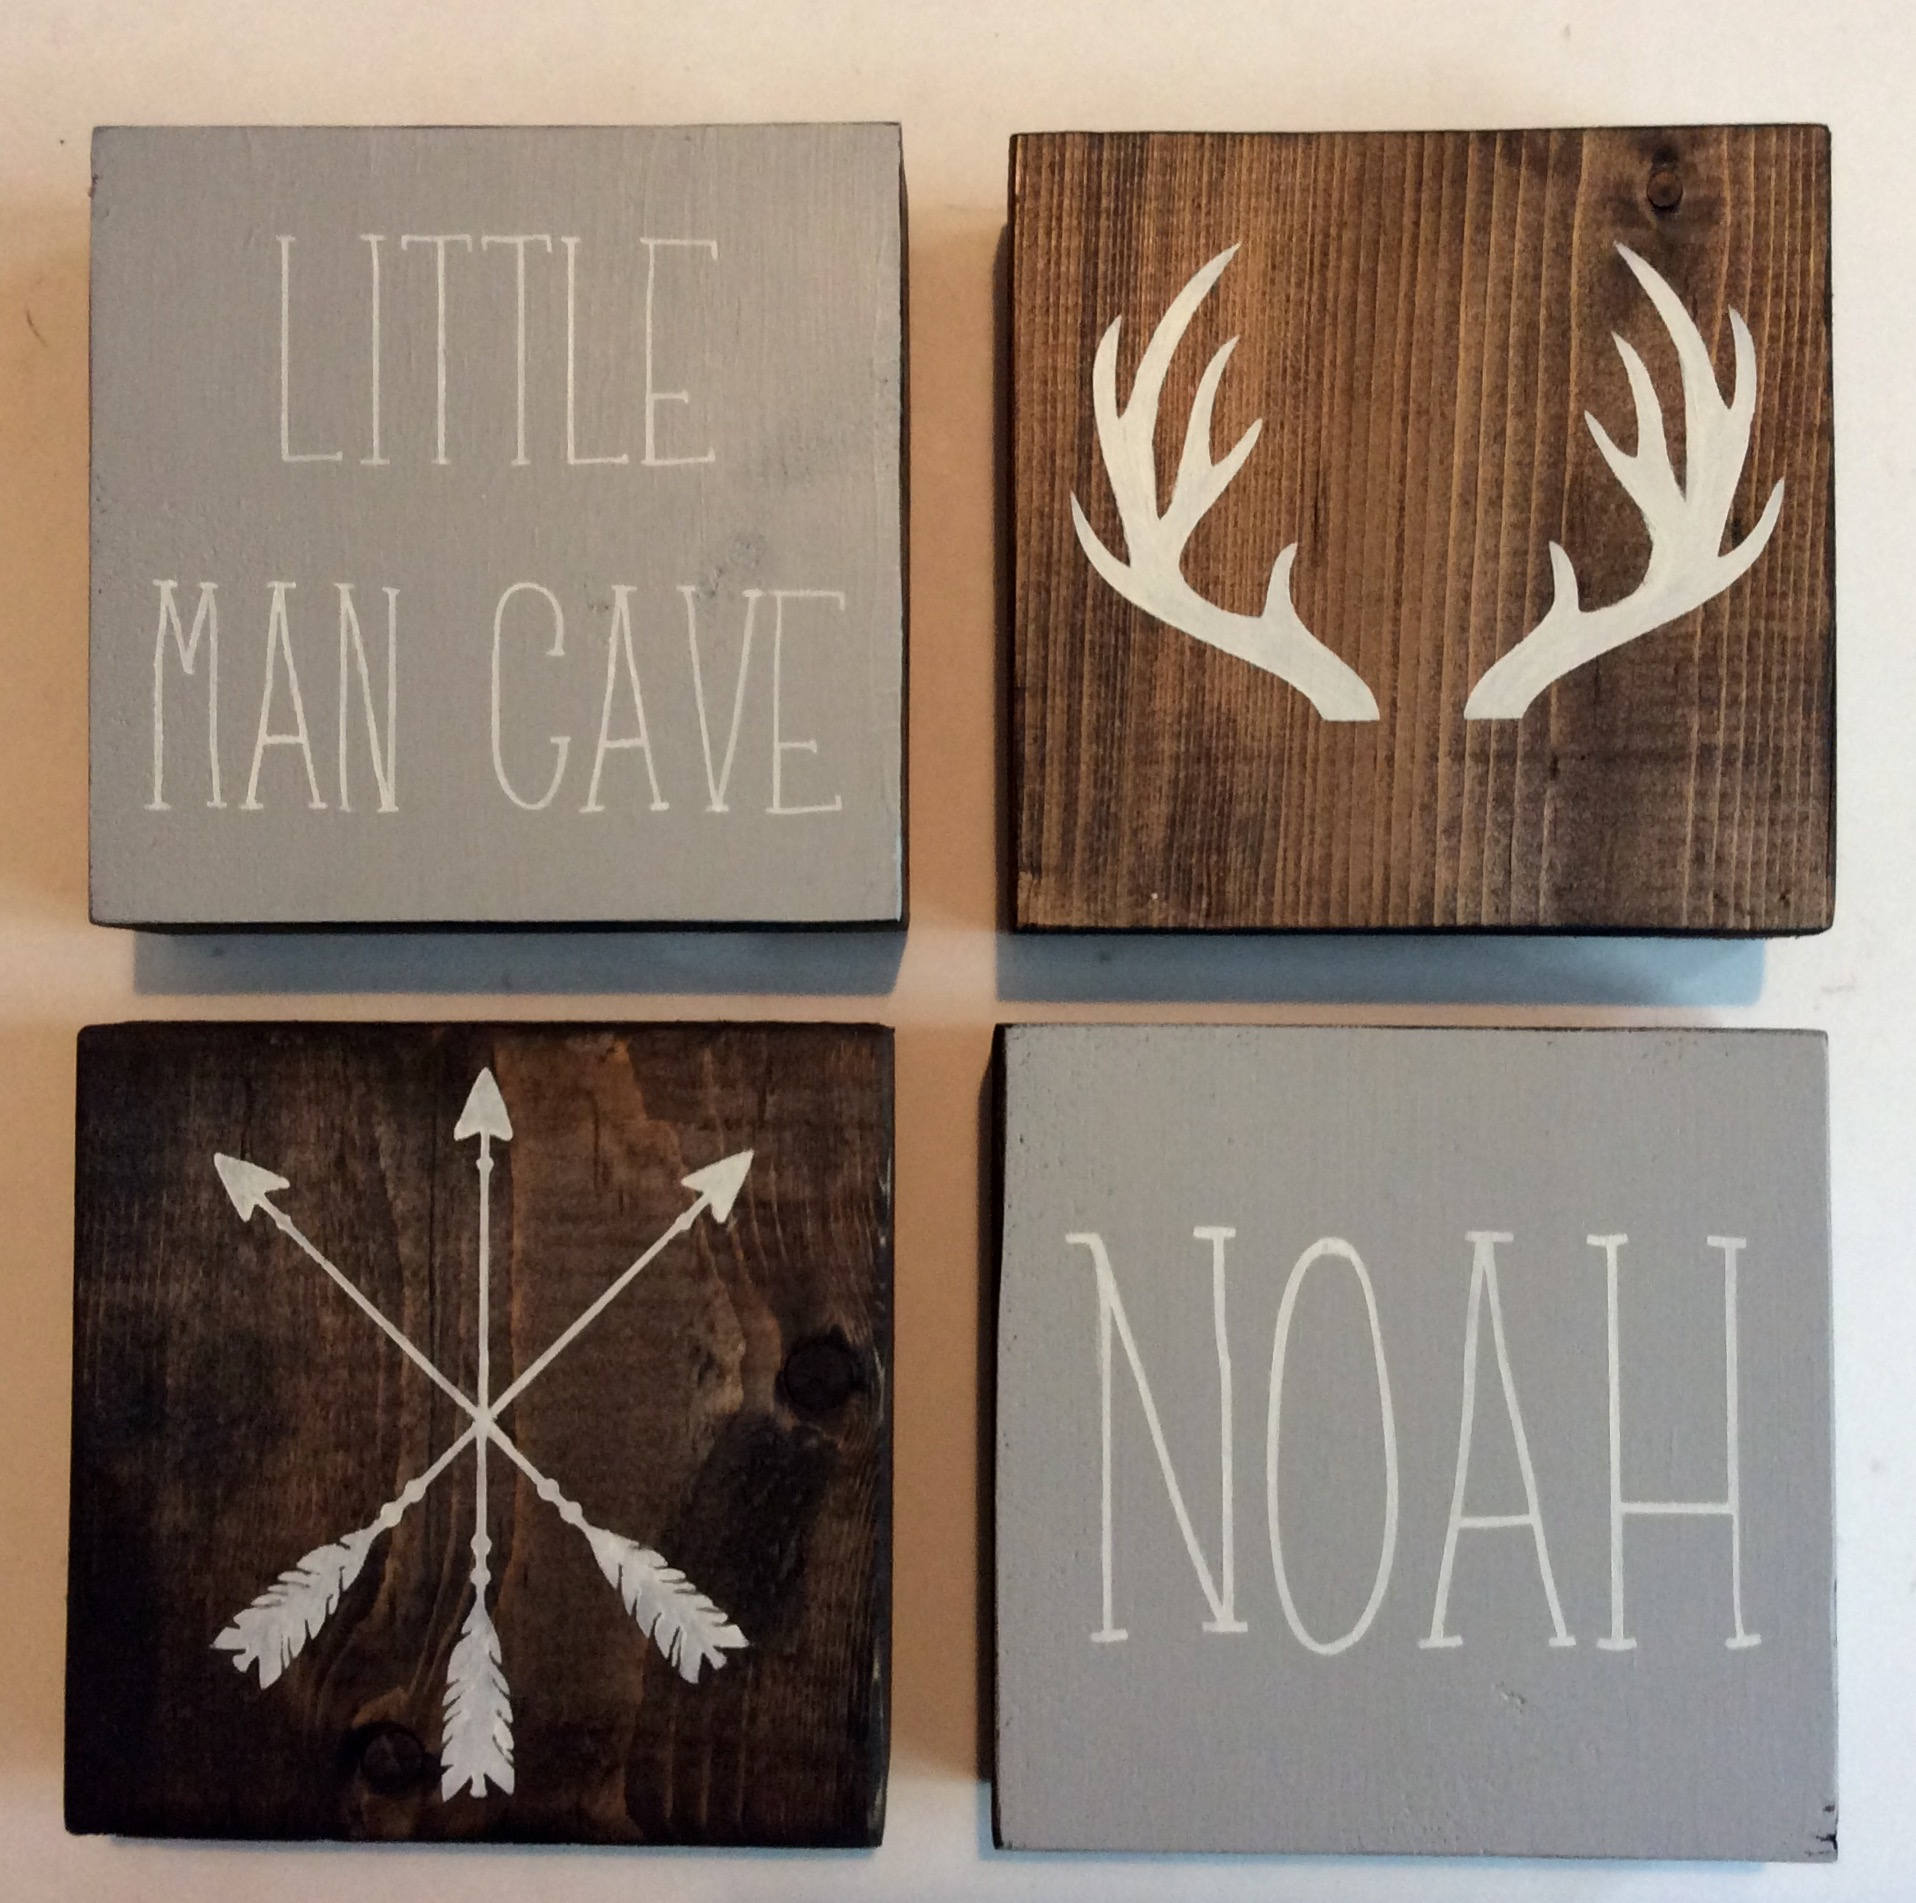 Man Cave Bedroom: Boys Bedroom Wall Boys Bedroom Decor Little Man Cave